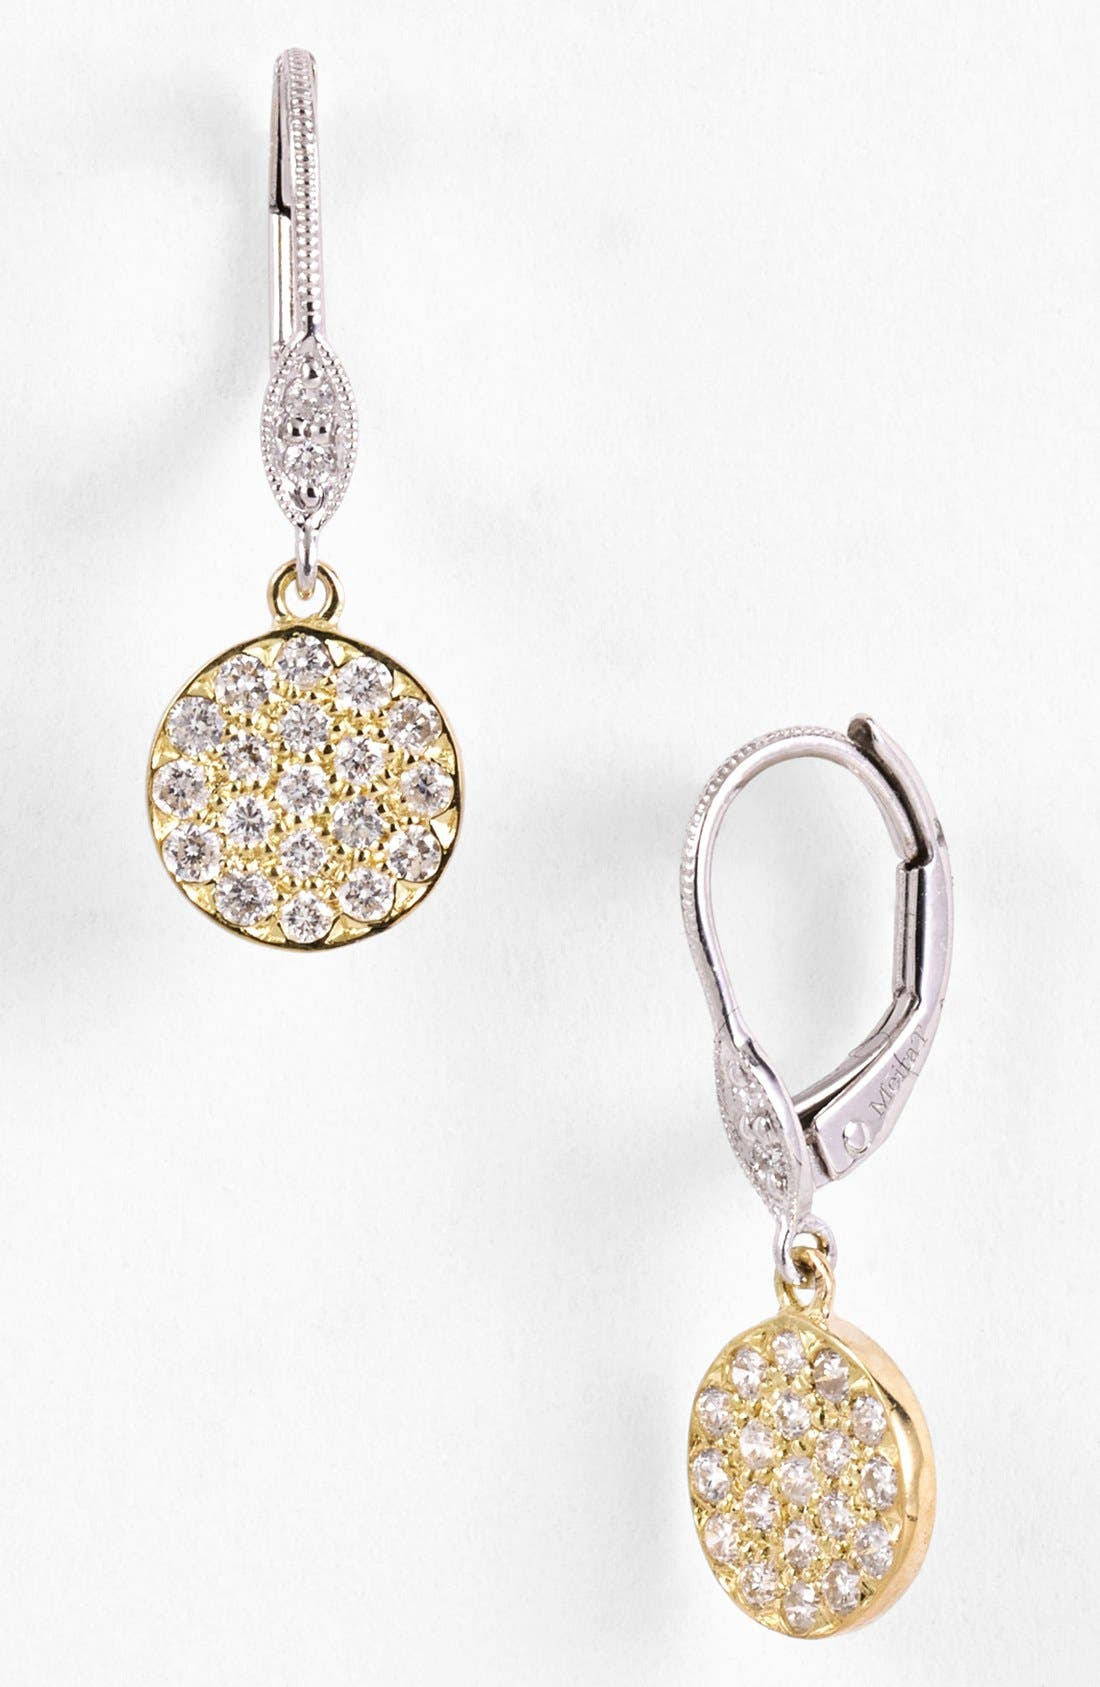 MeiraT 'Dazzling' Diamond Disc Drop Earrings,                         Main,                         color, Yellow Gold